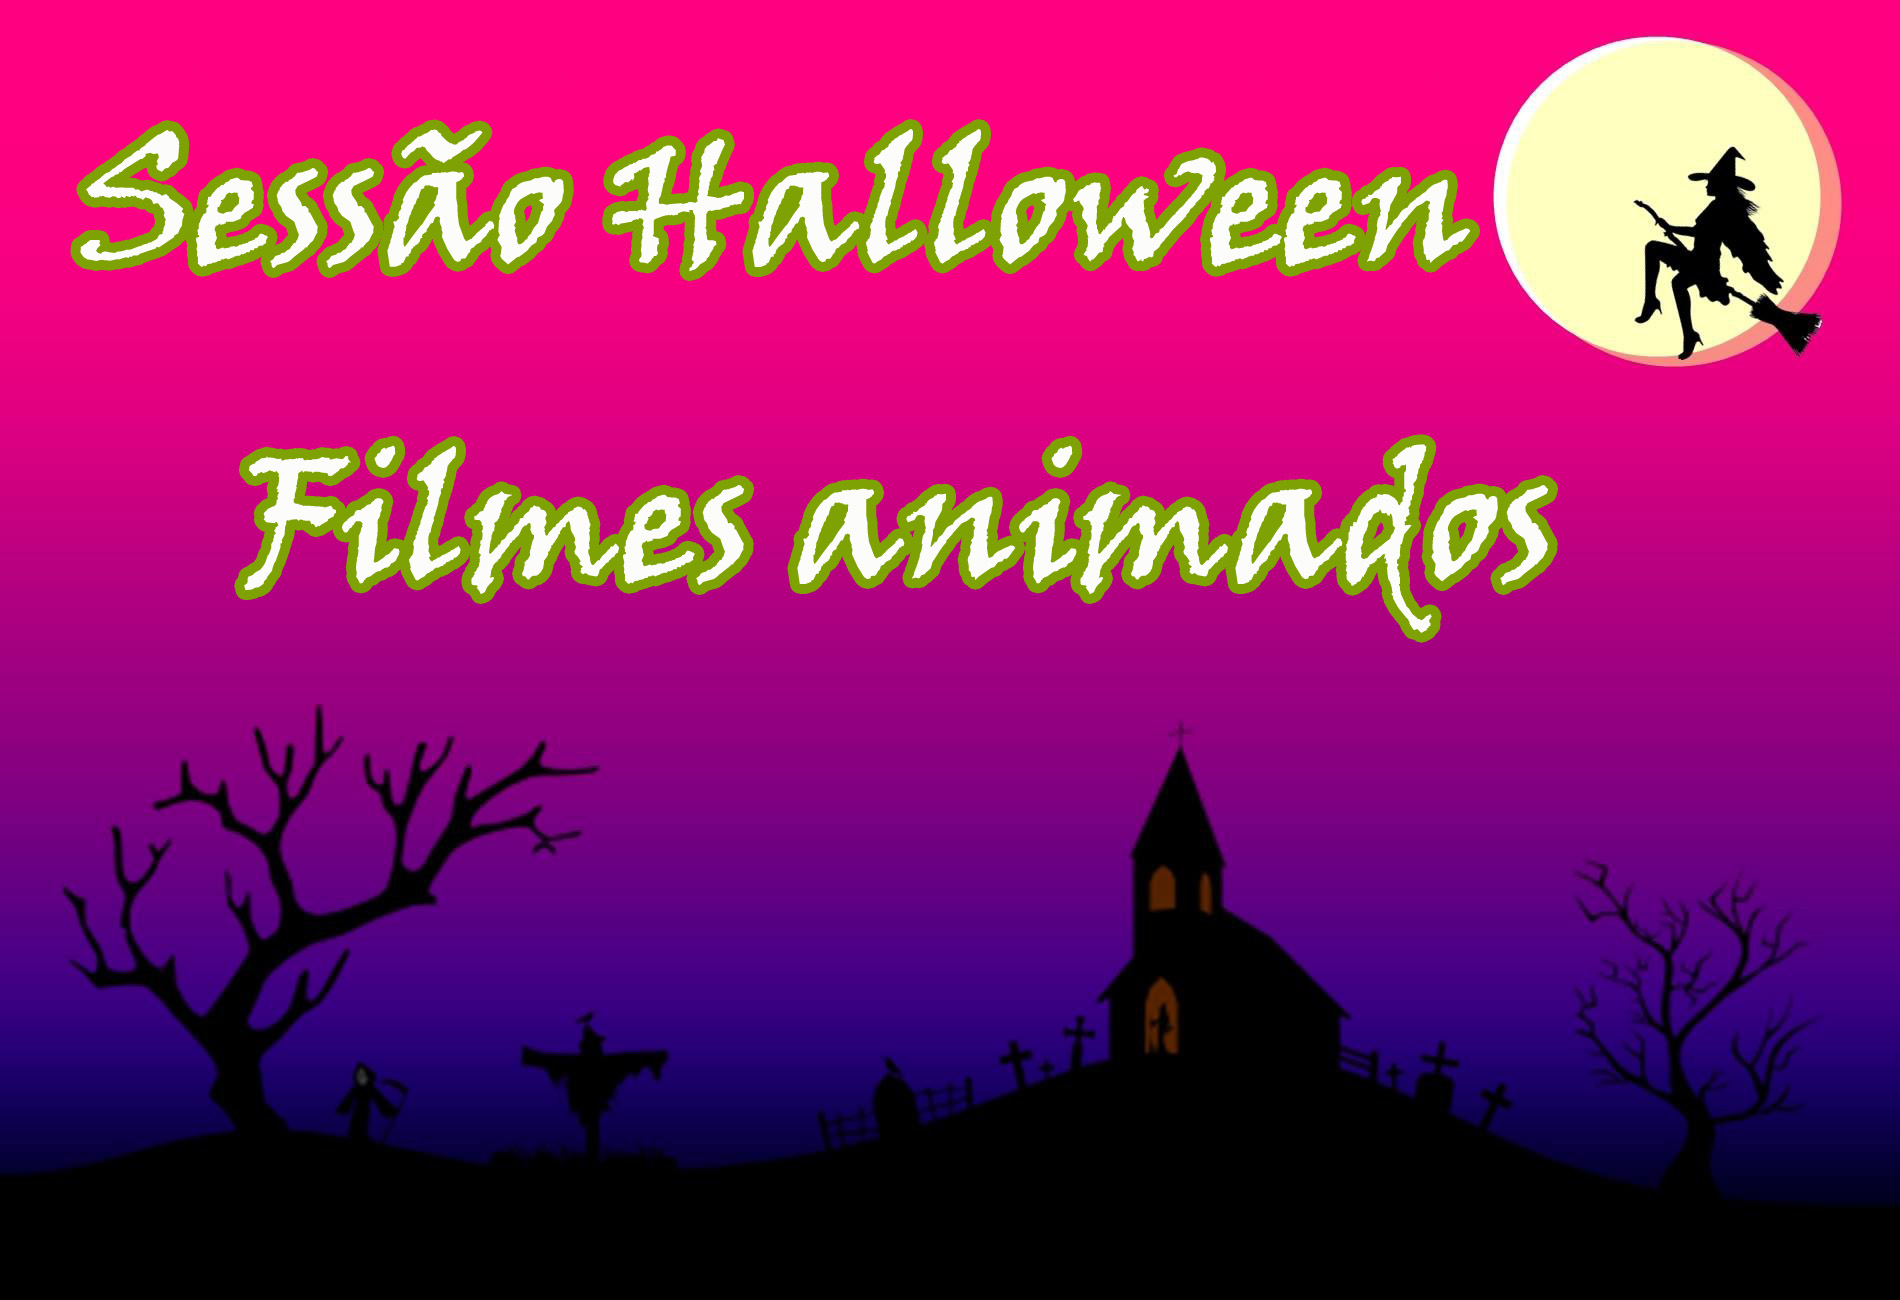 sessao-halloween-filmes-animados